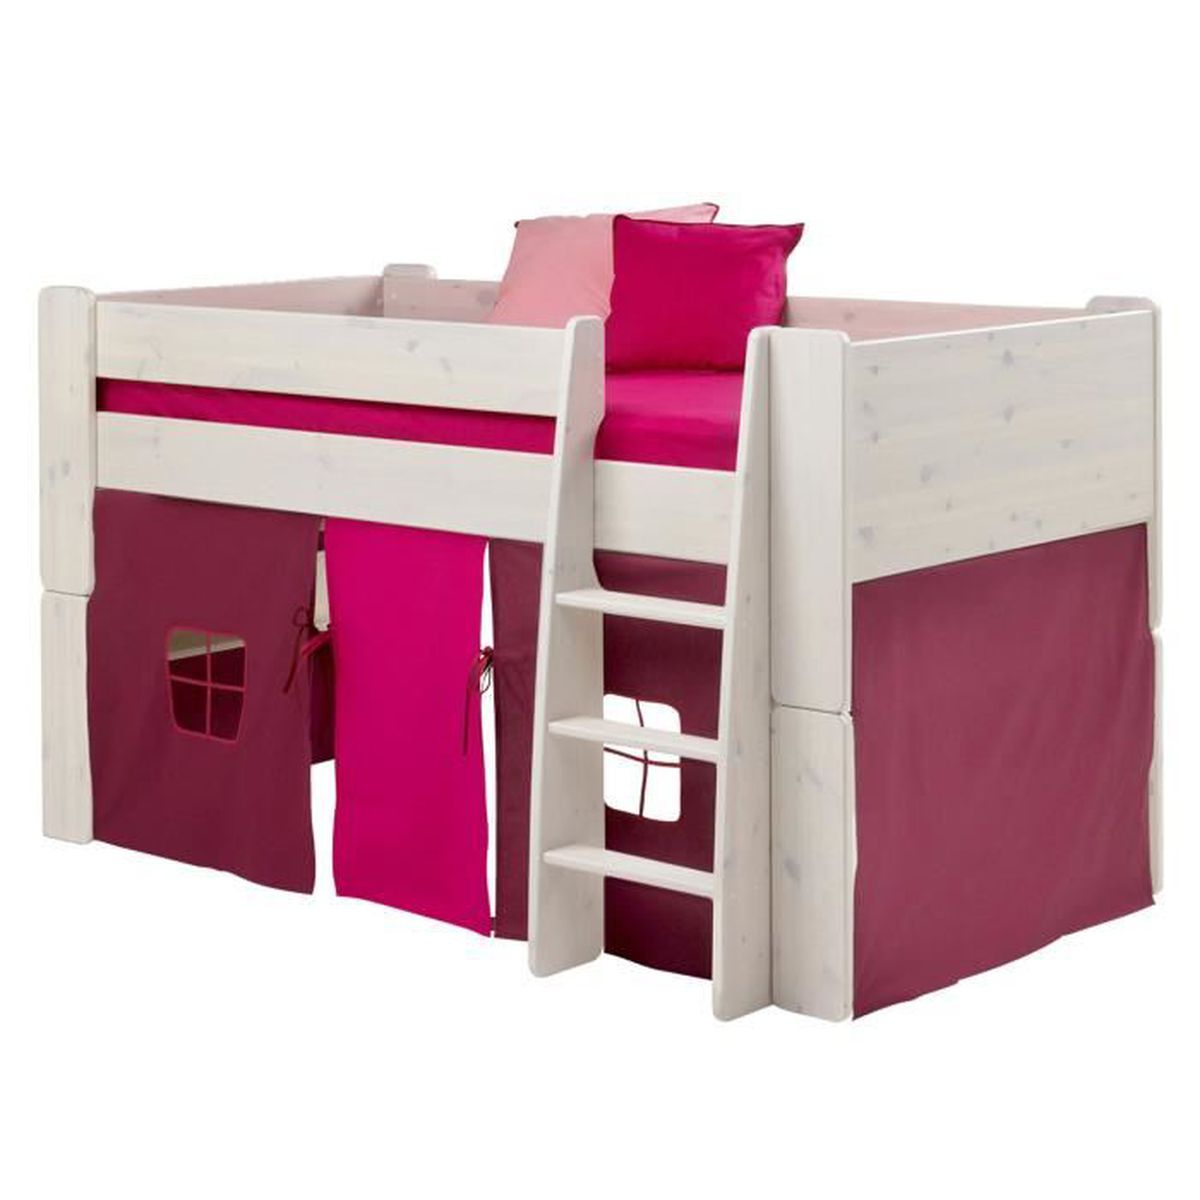 lit mi hauteur en mdf avec habillage de lit rose violet. Black Bedroom Furniture Sets. Home Design Ideas